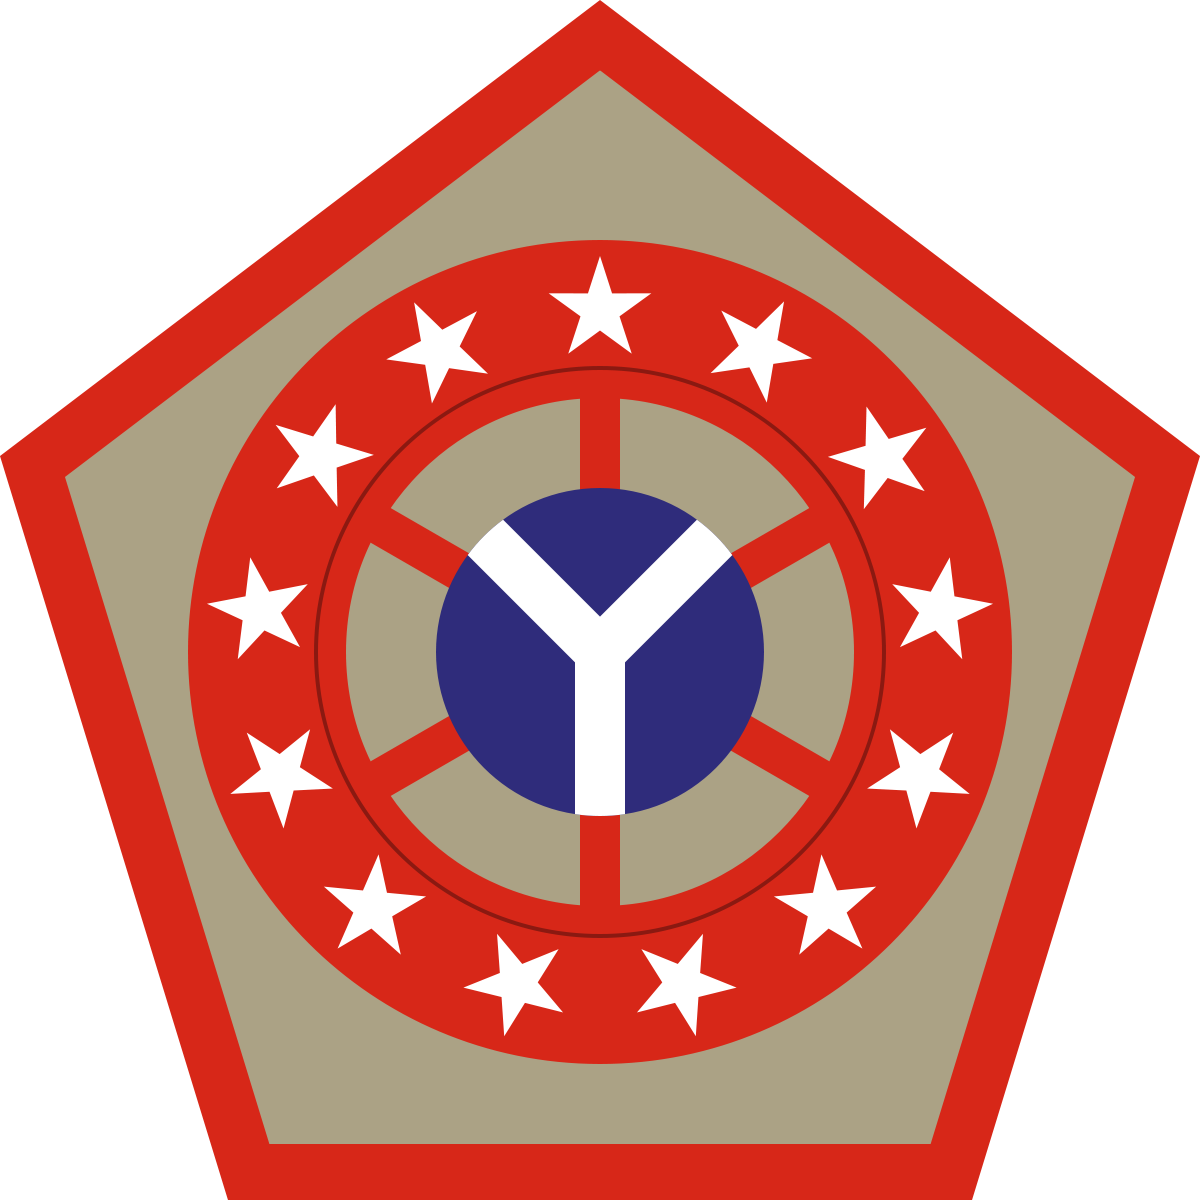 108th Sustainment Brigade (United States) Wikipedia